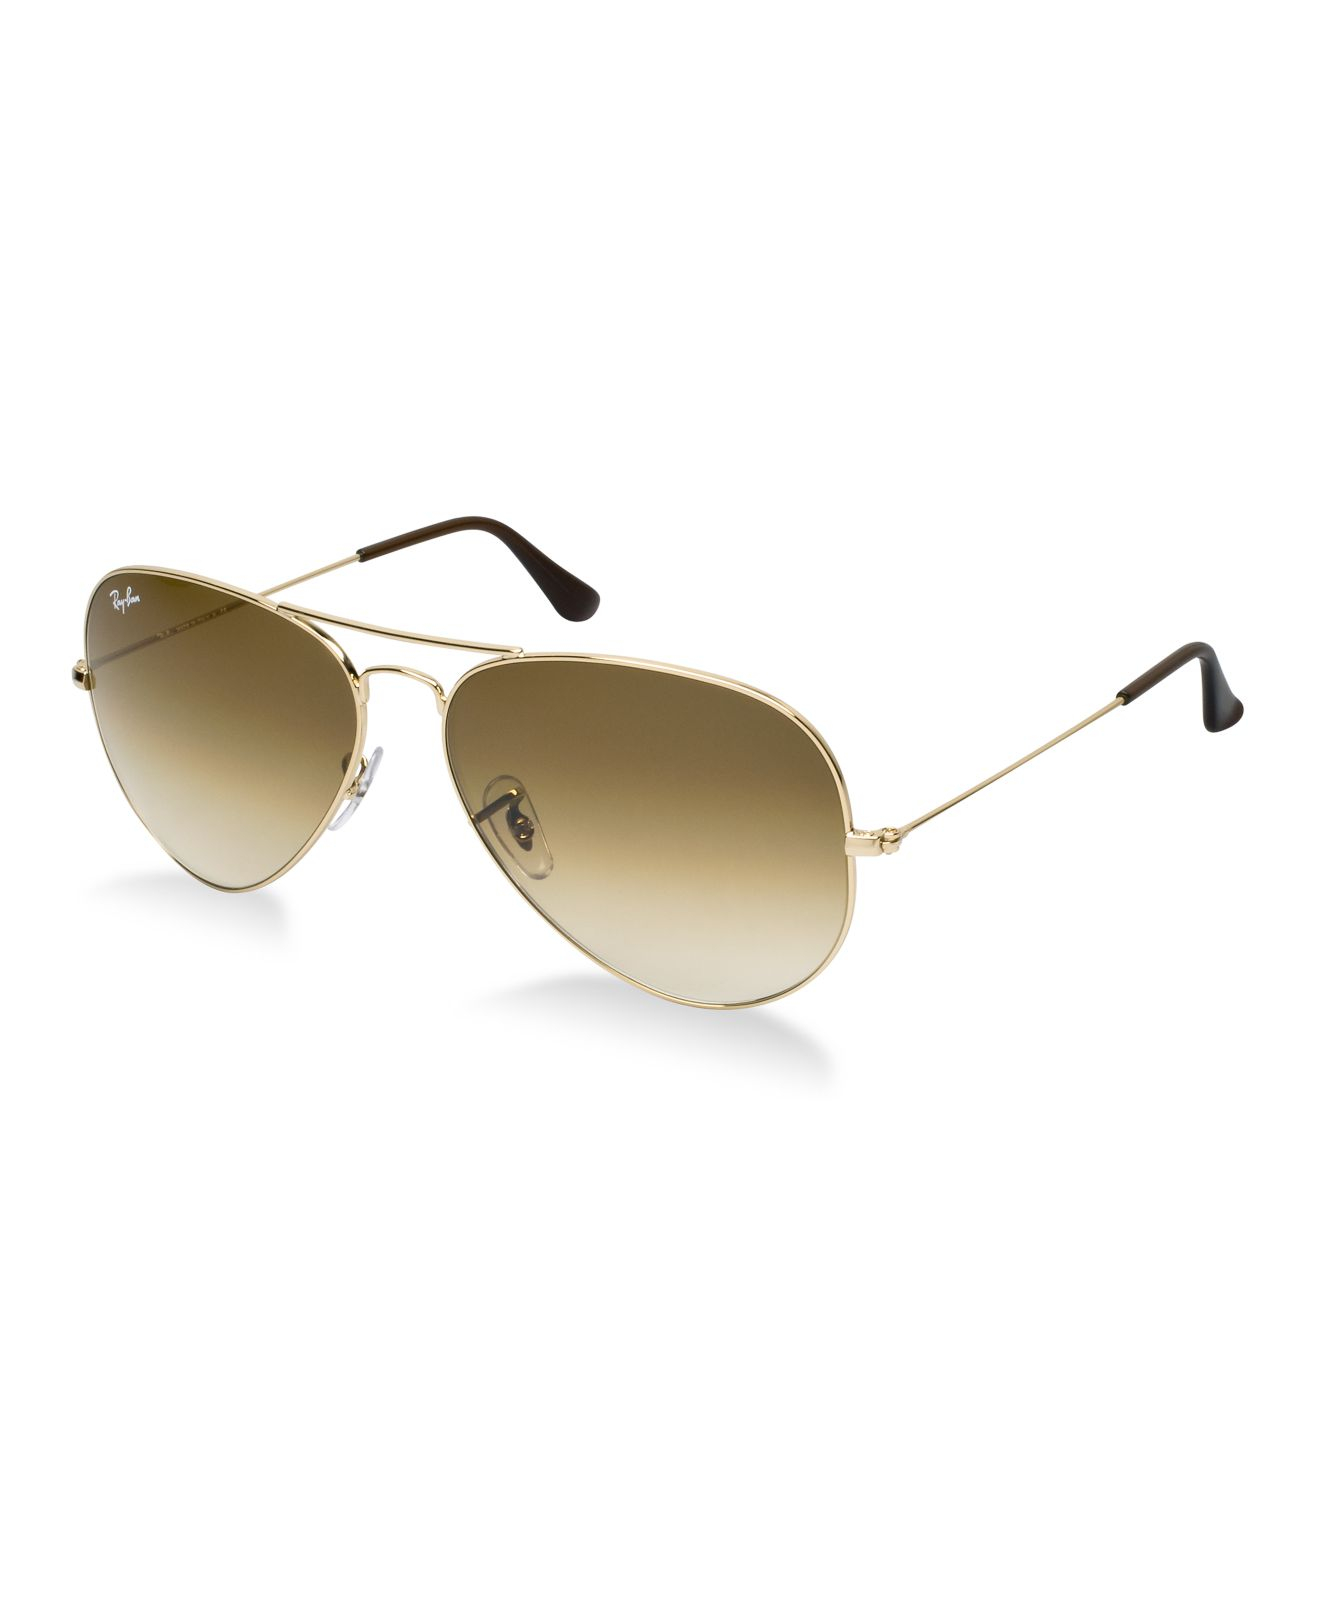 Ray ban rb3025 62 aviator gradient in metallic lyst for Ray ban aviator miroir homme